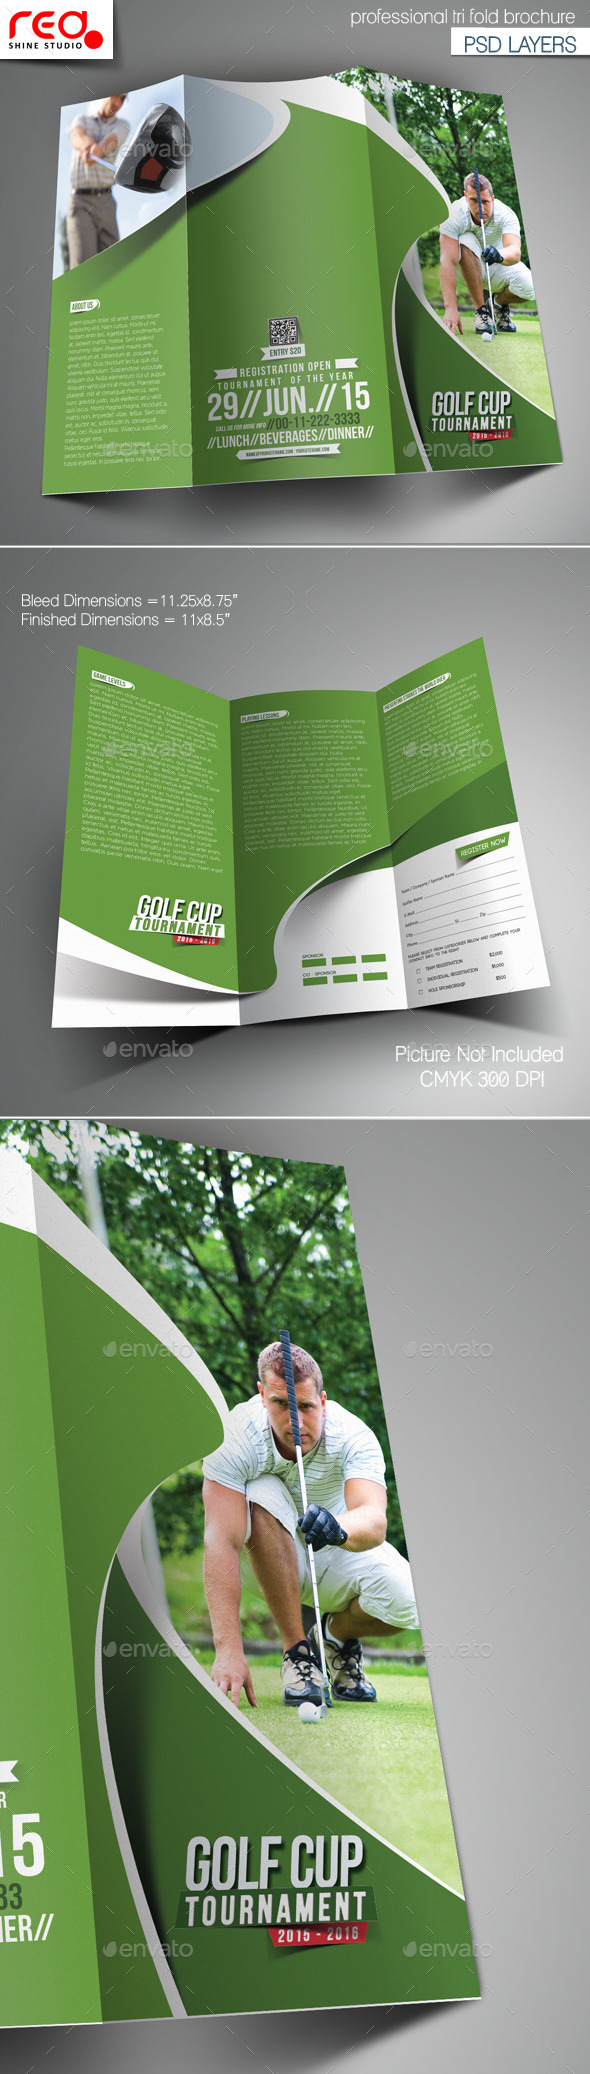 Golf Brochure Graphics Designs Templates From GraphicRiver - Golf brochure template